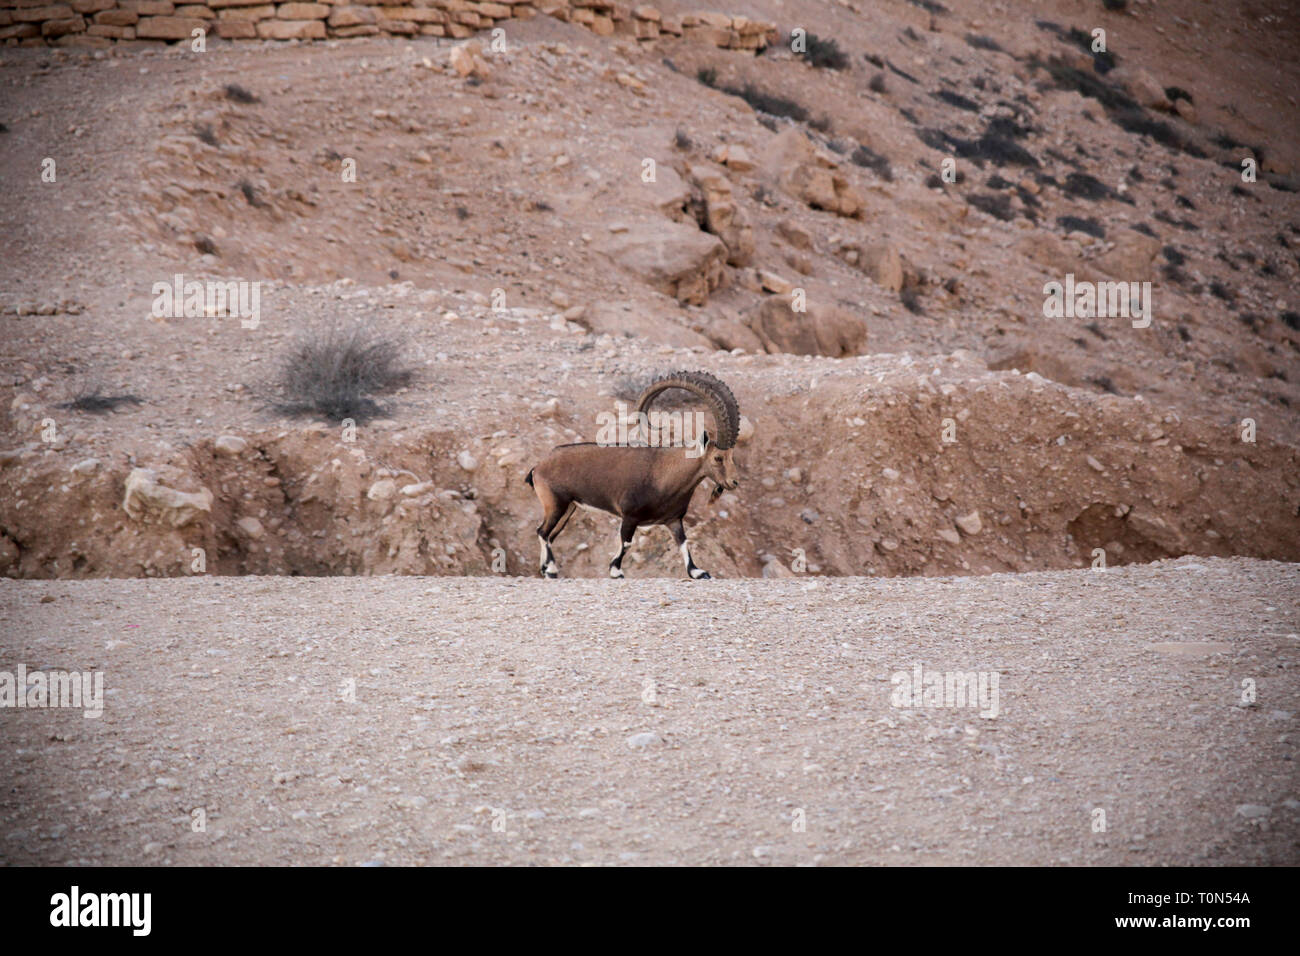 Impressive Male Nubian Ibex (Capra ibex nubiana AKA Capra nubiana). Photographed at Kibbutz Sde Boker, Negev Desert, Israel in September Stock Photo